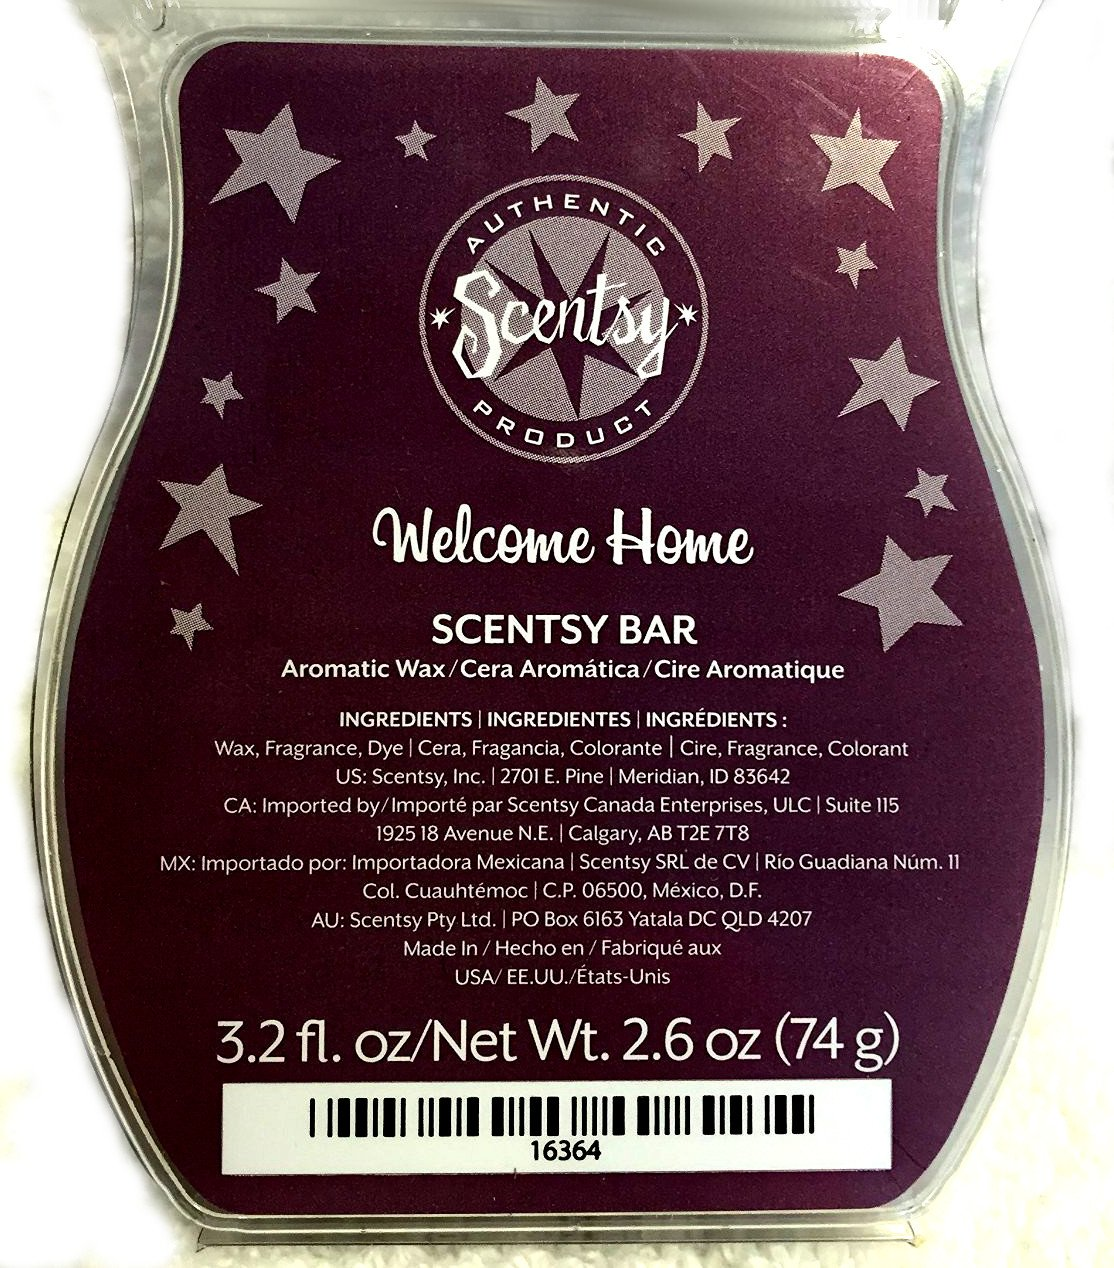 Scentsy Scented Wax, WELCOME HOME